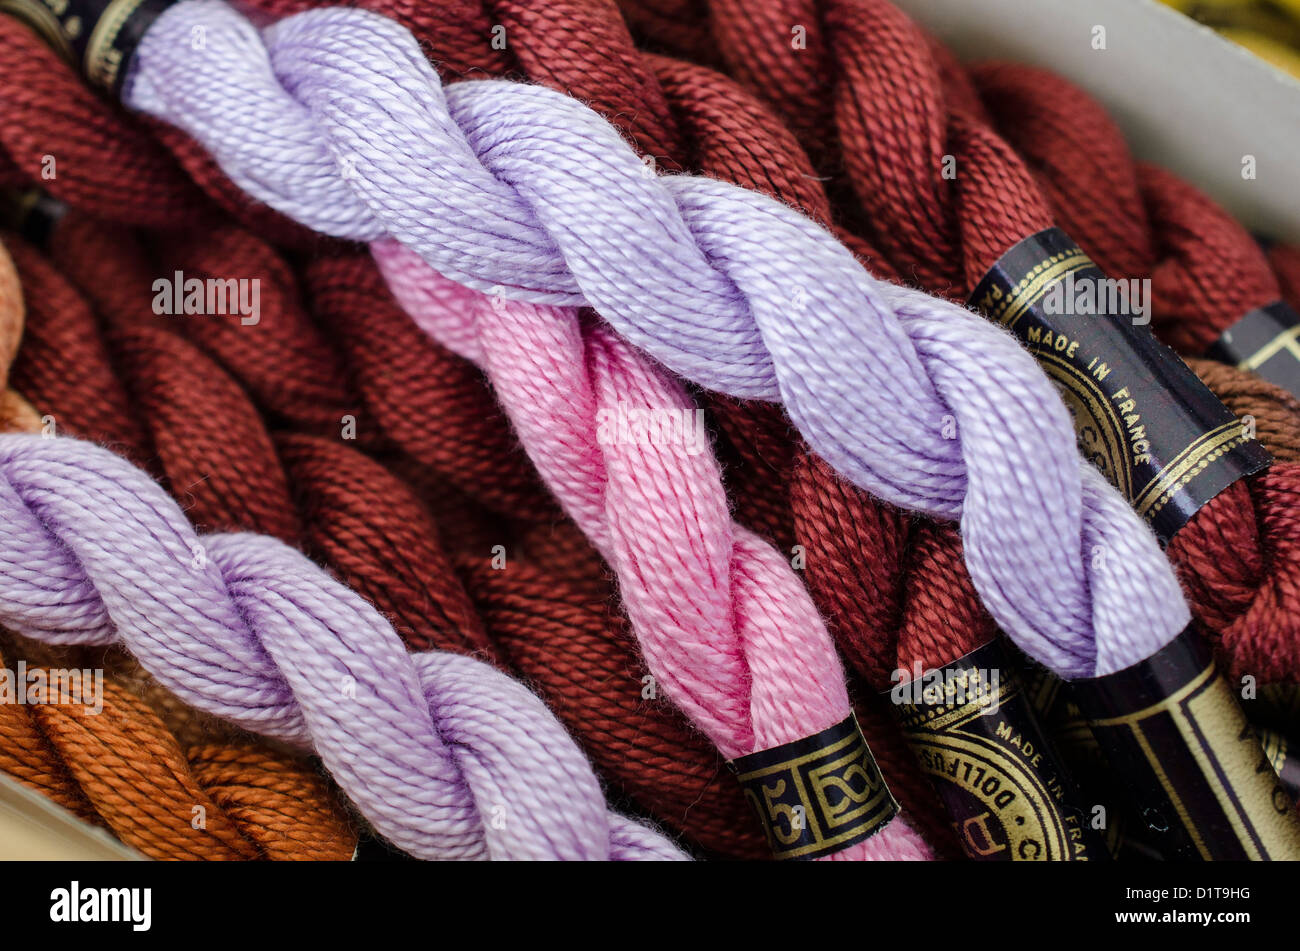 Skein of cotton thread jumbled together at a market stall - Stock Image